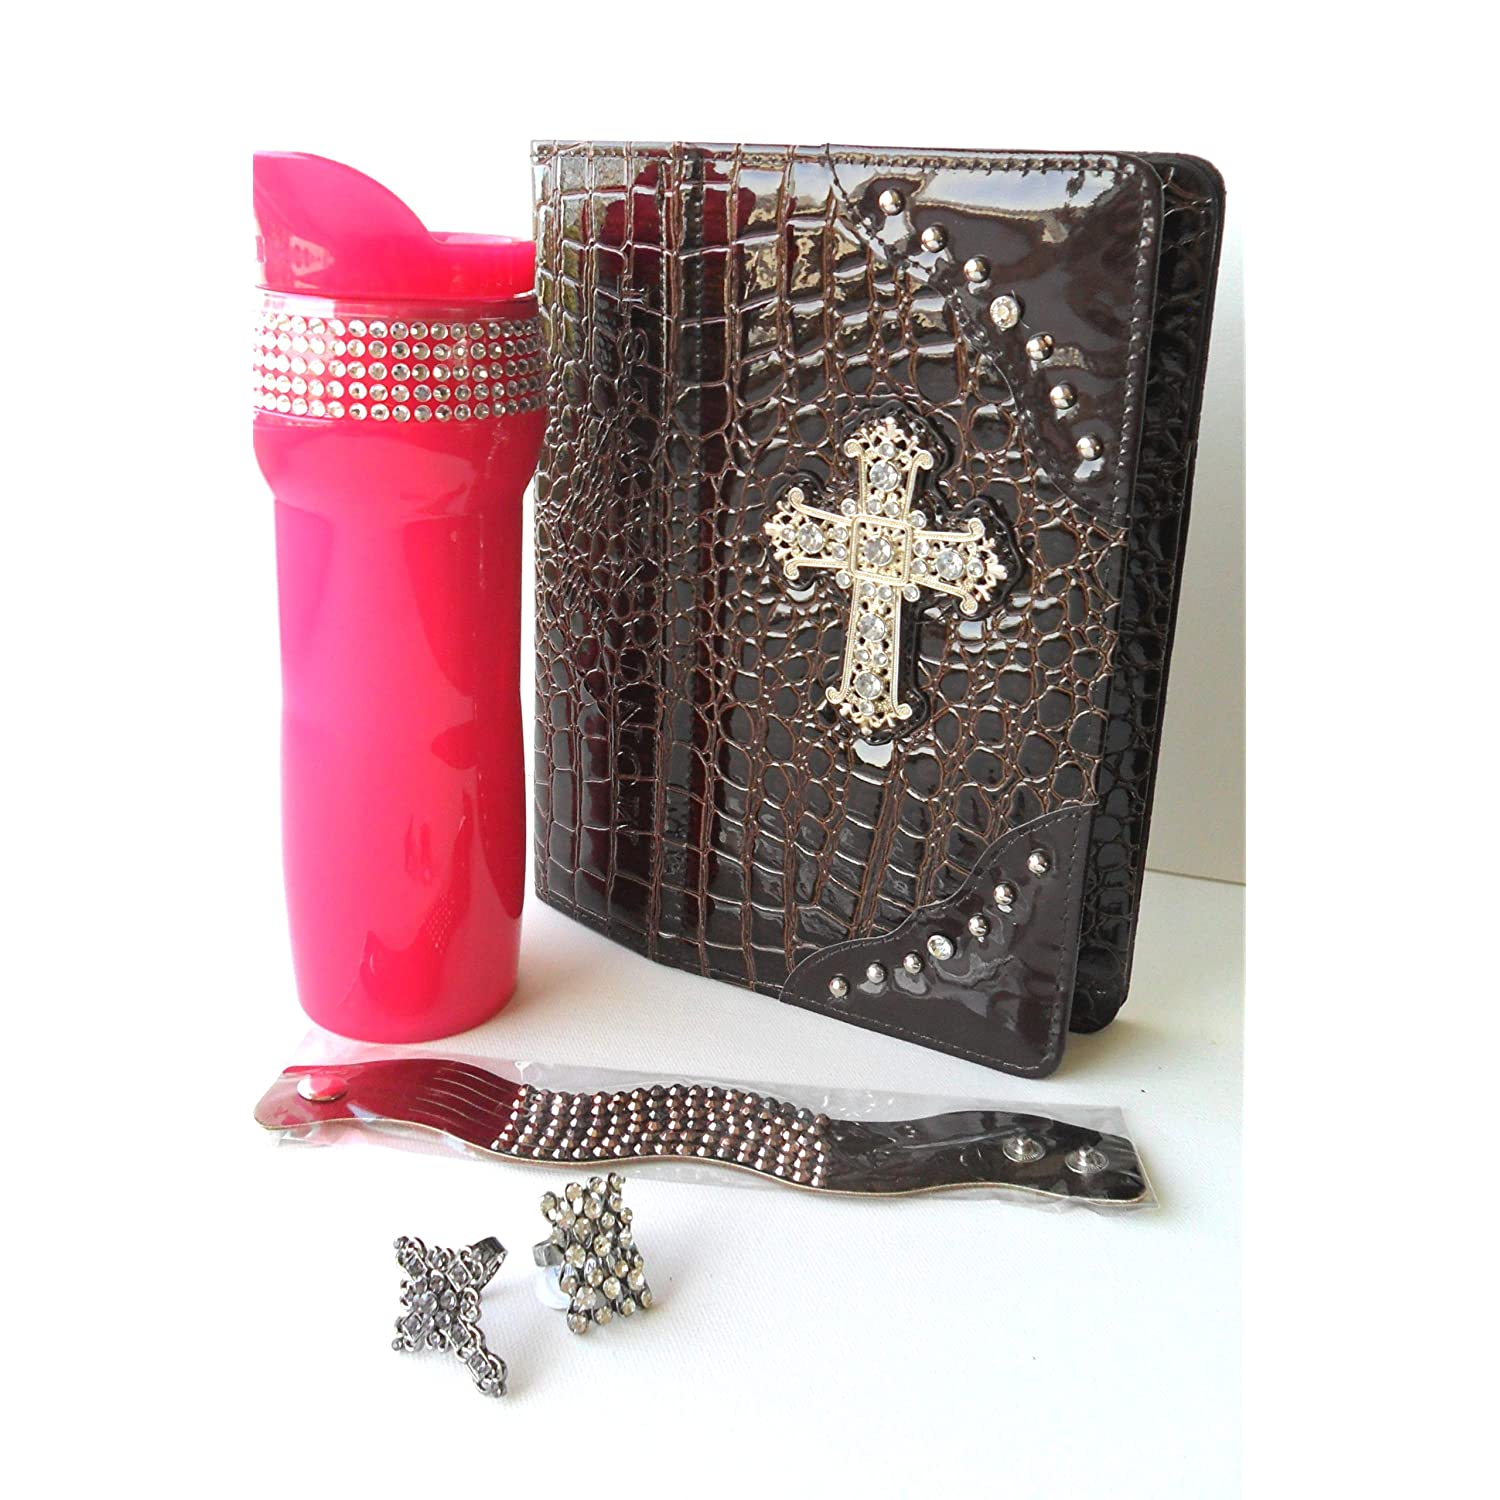 Rhinestone Bling Gift Set w iPad 2 Case & Hot Pink Travel Coffee Mug